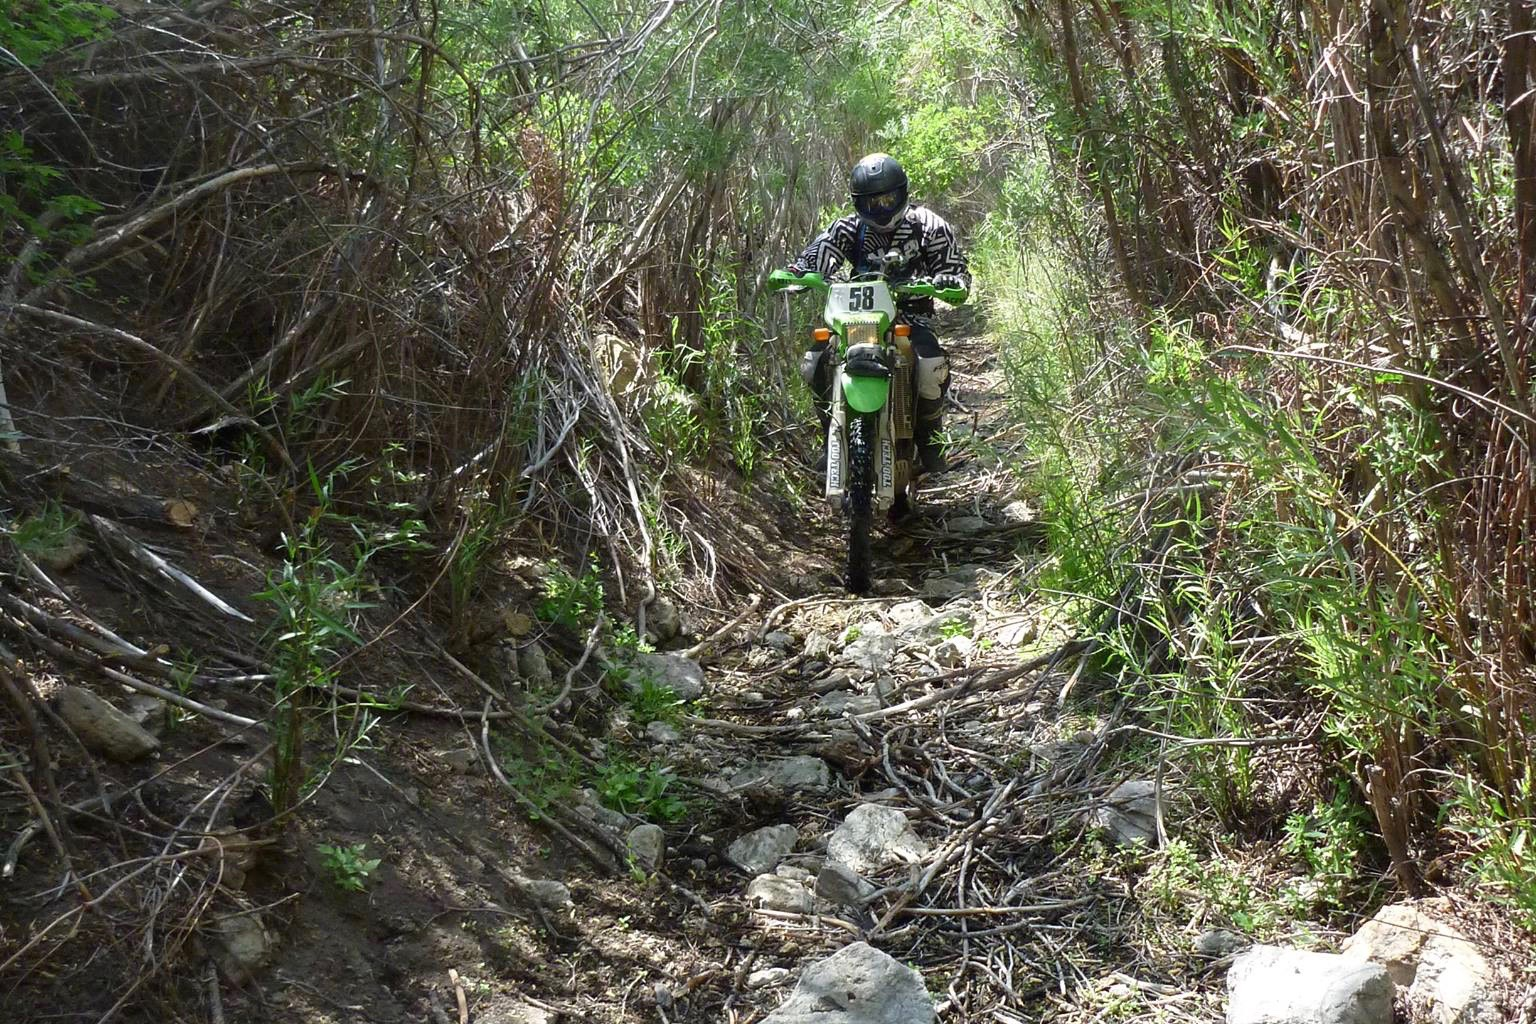 Baja Designs to Discontinue Dual-Sport Kits